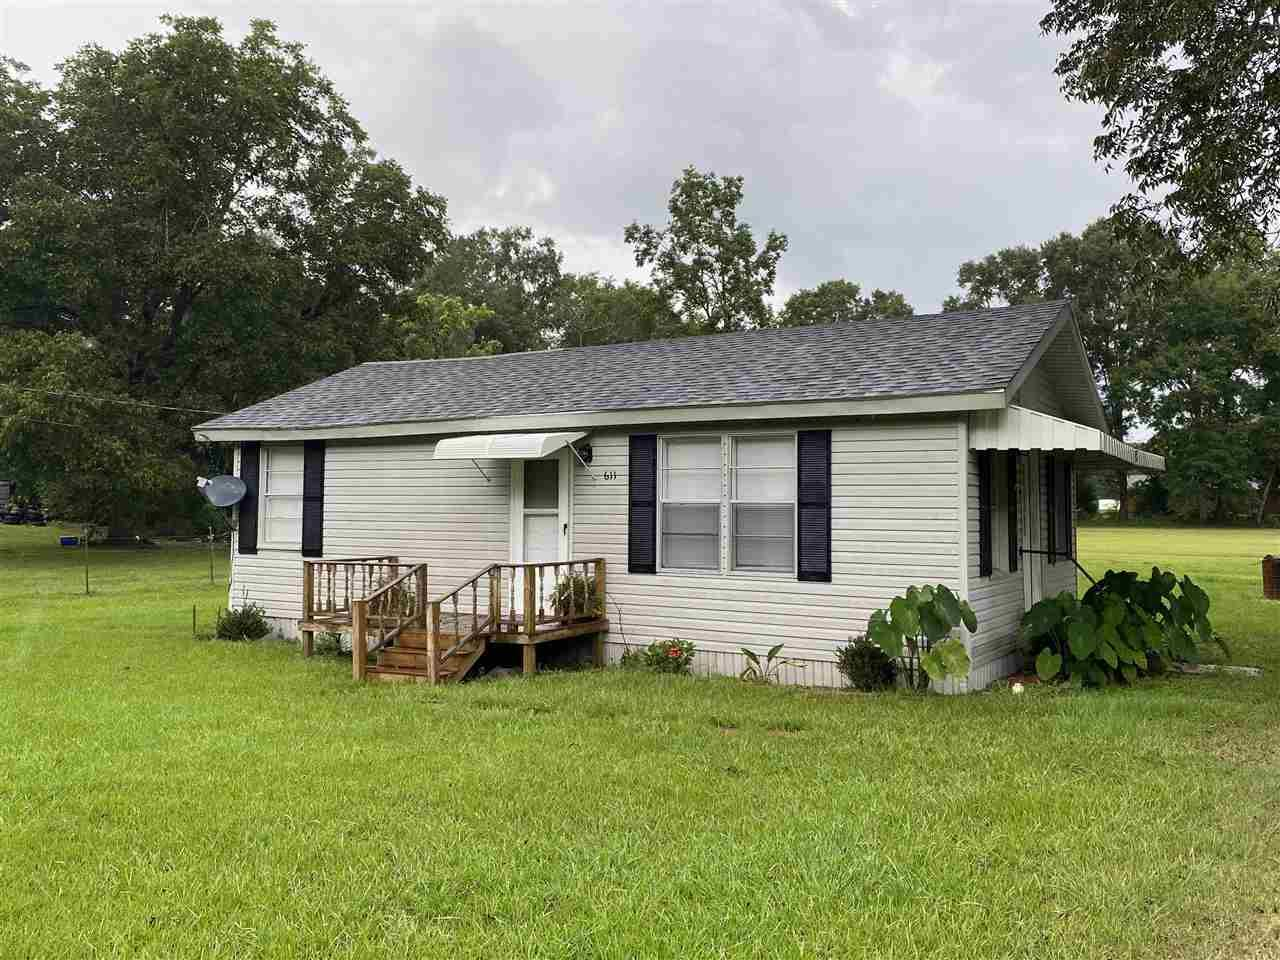 611 RALEIGH DR, Magee, MS 39111 - MLS#: 343798